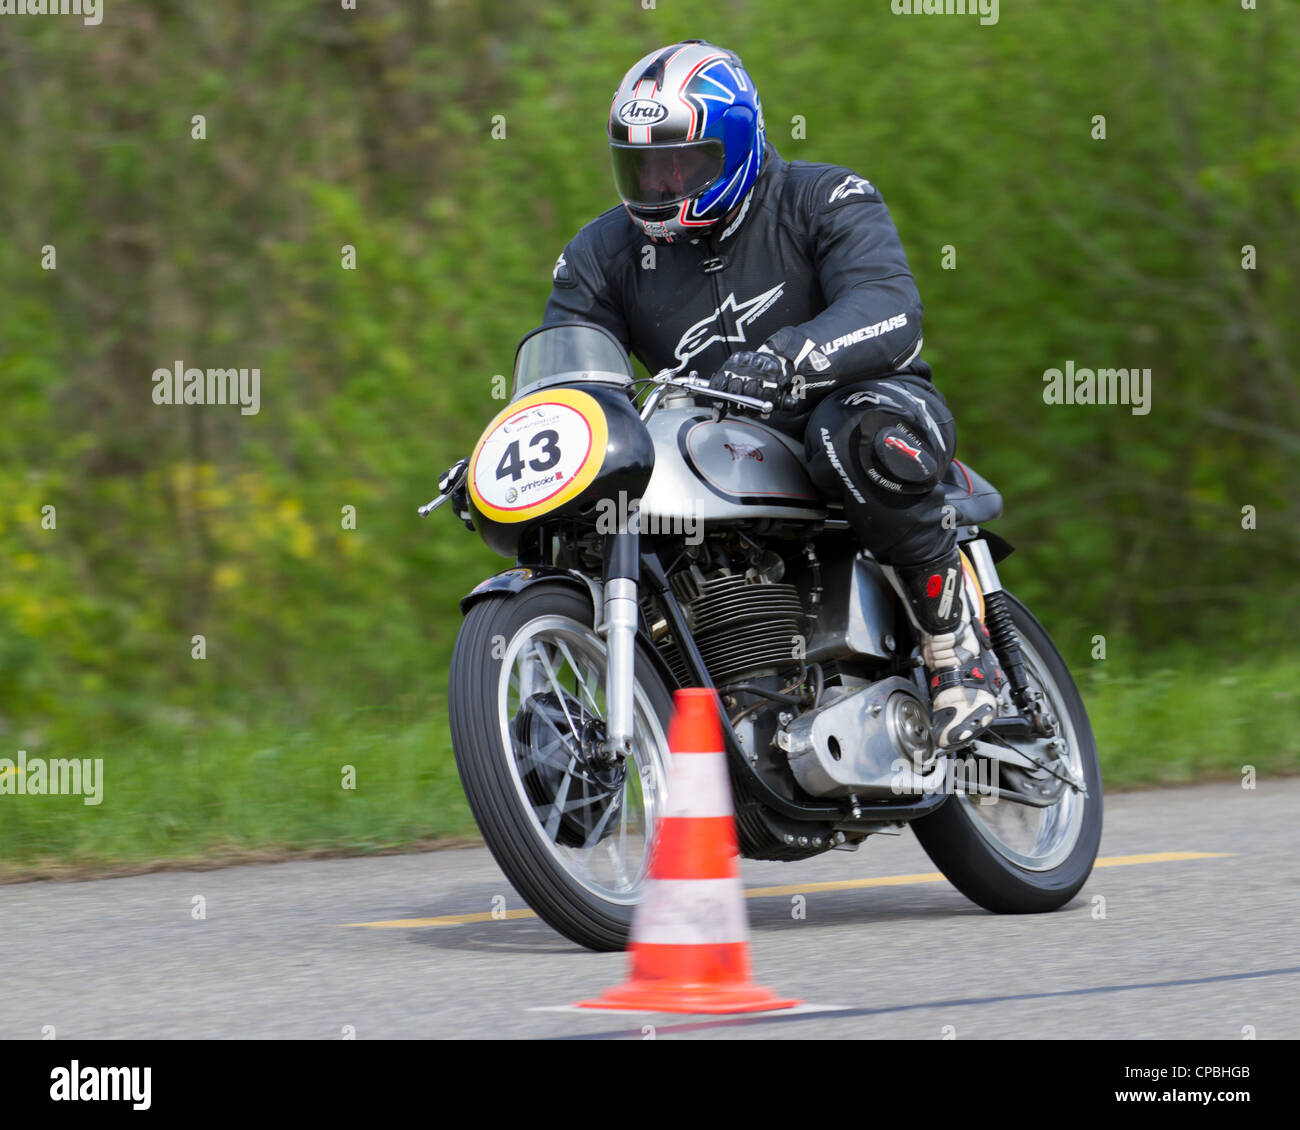 Vintage motorbike Norton Manx from 1959 on display at Grand Prix in Mutschellen, SUI on April 29, 2012 - Stock Image